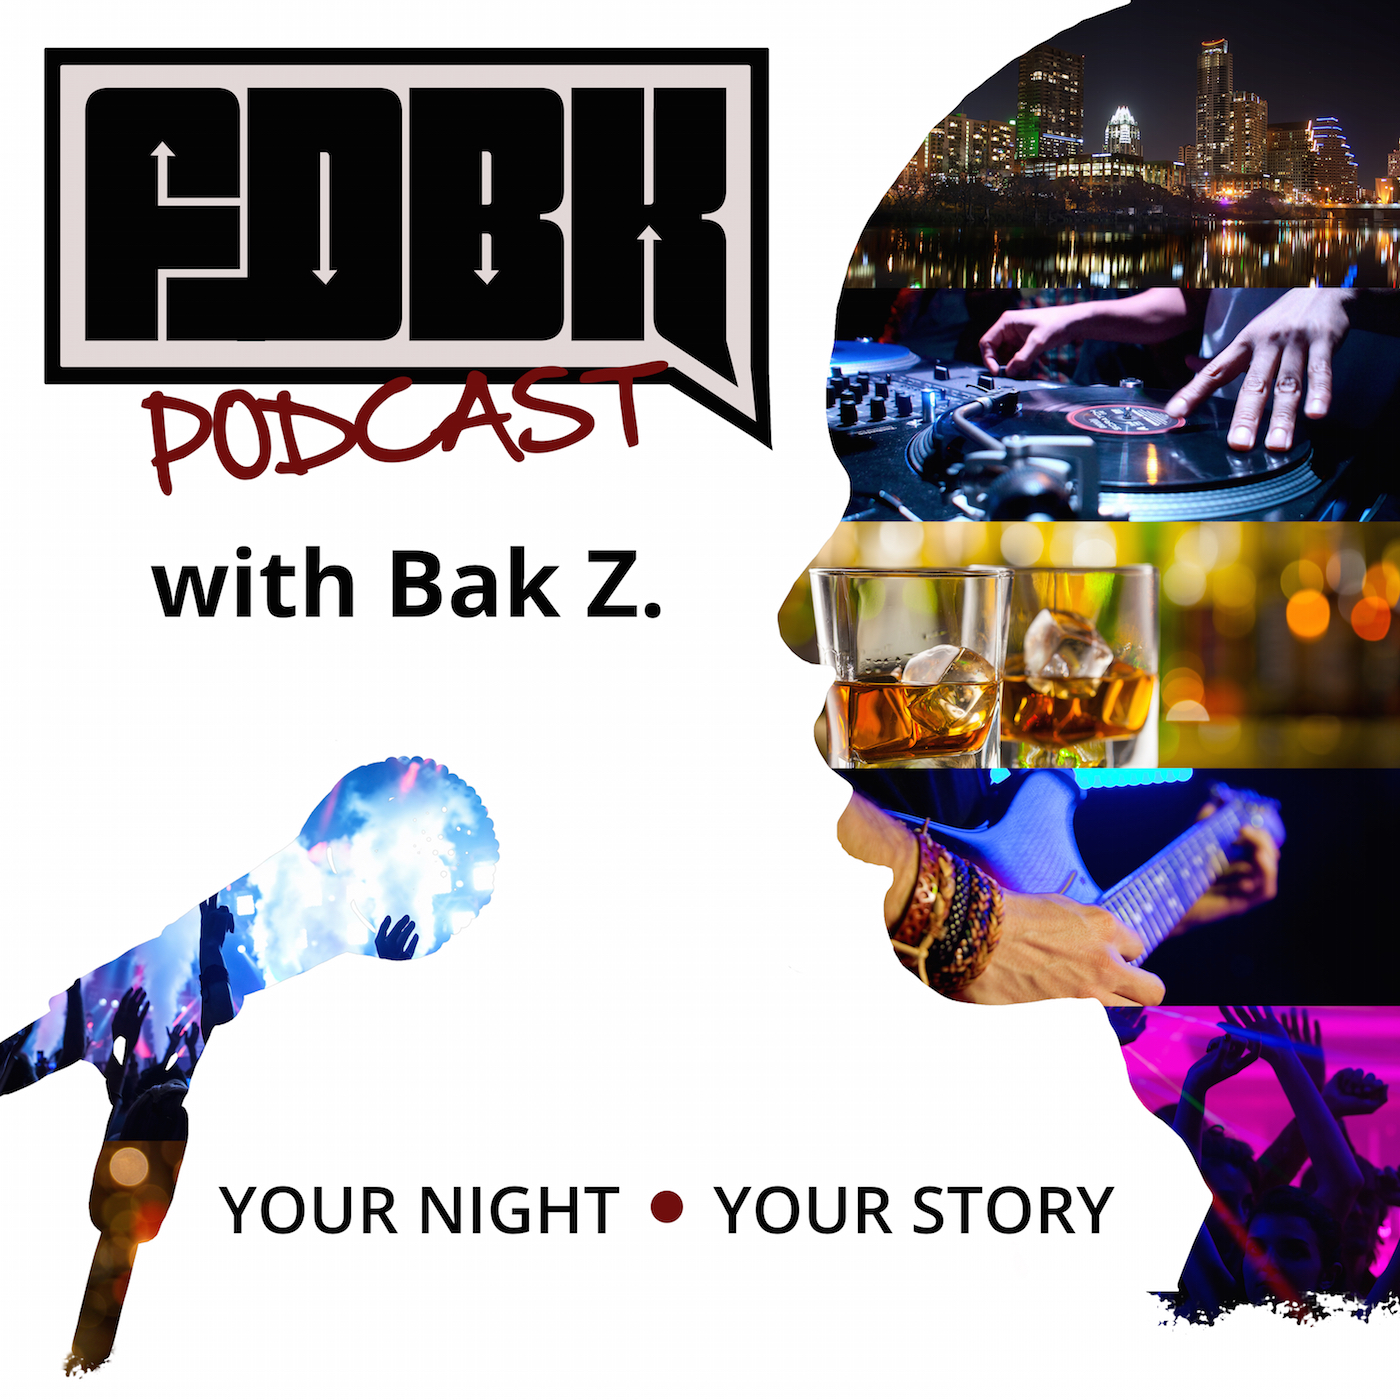 The FeedBak Podcast with Bak Z.